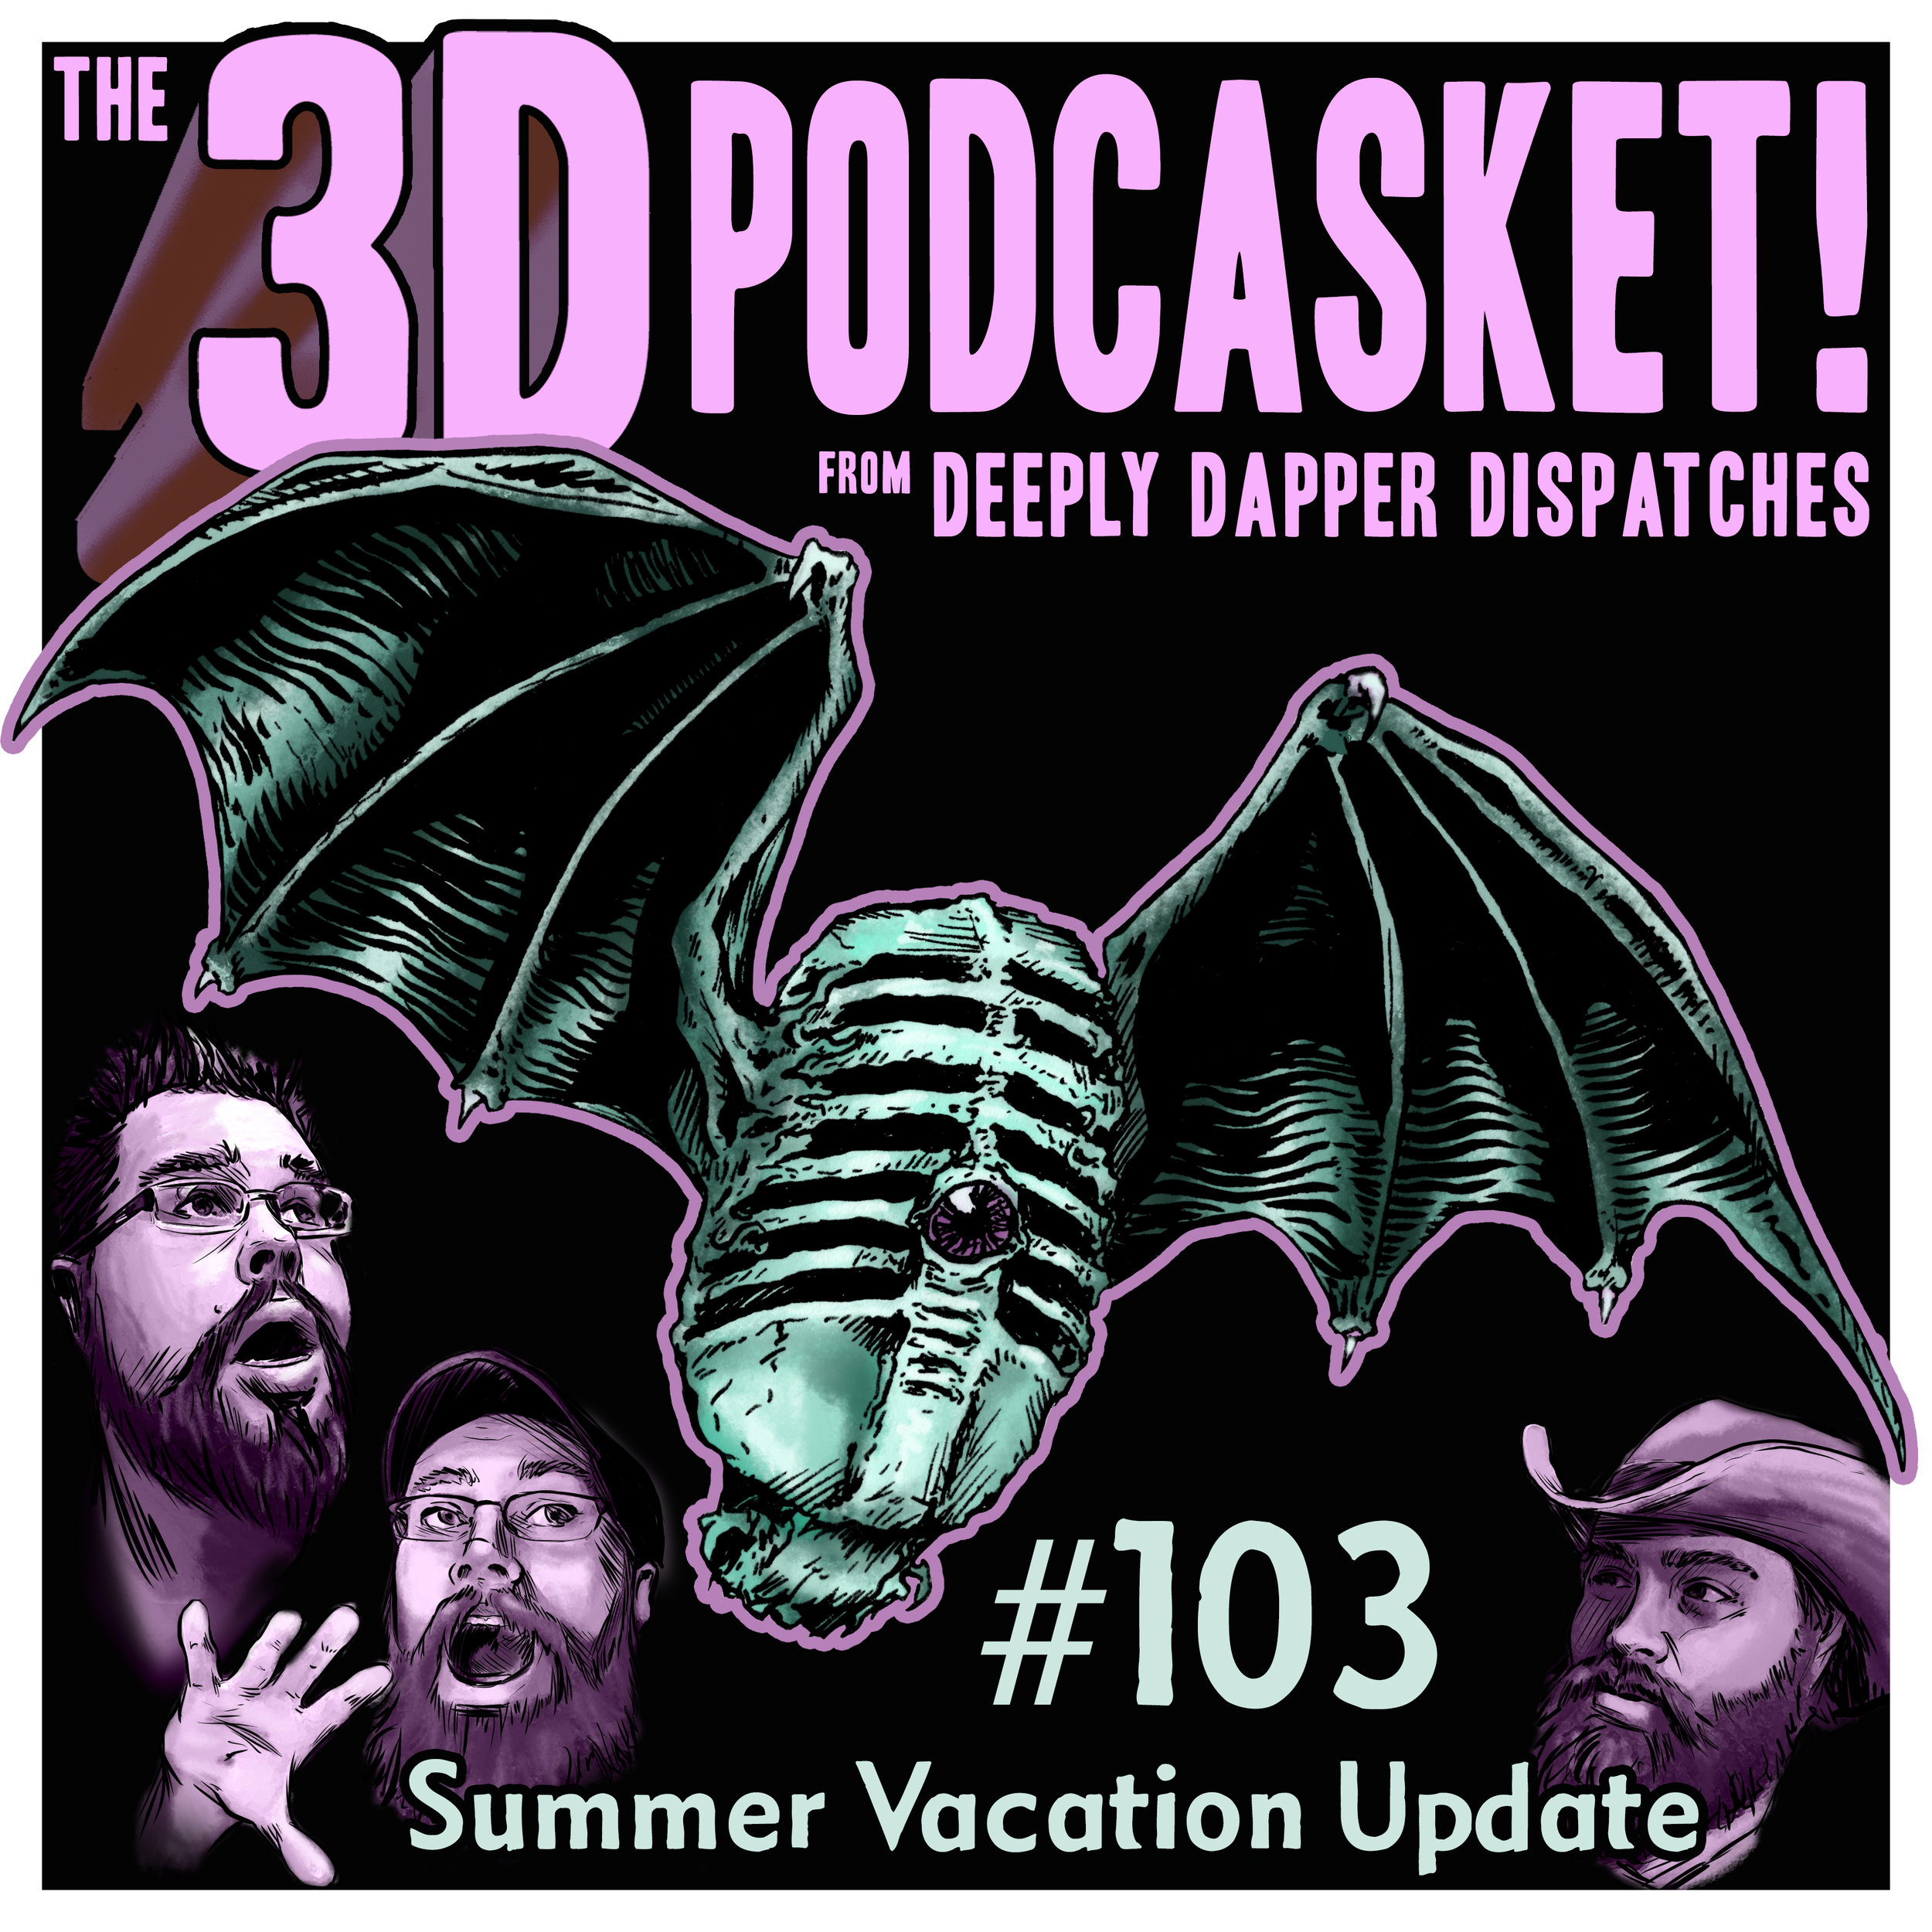 3D Podcasket Episode 103 Cover - Summer Vacation Update